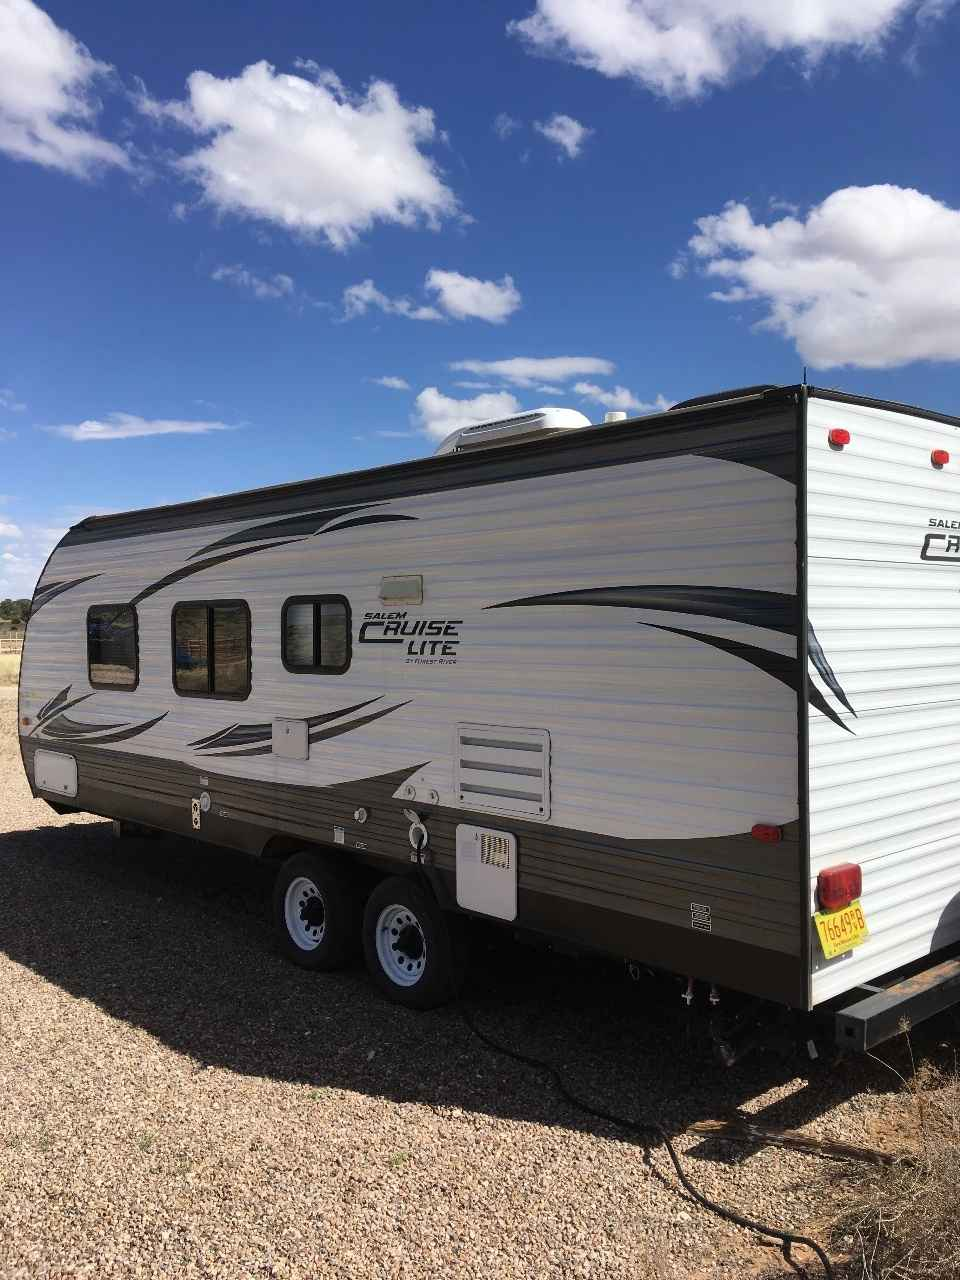 2016 used forest river salem cruise lite t241qbxl travel trailer in new mexico nm. Black Bedroom Furniture Sets. Home Design Ideas